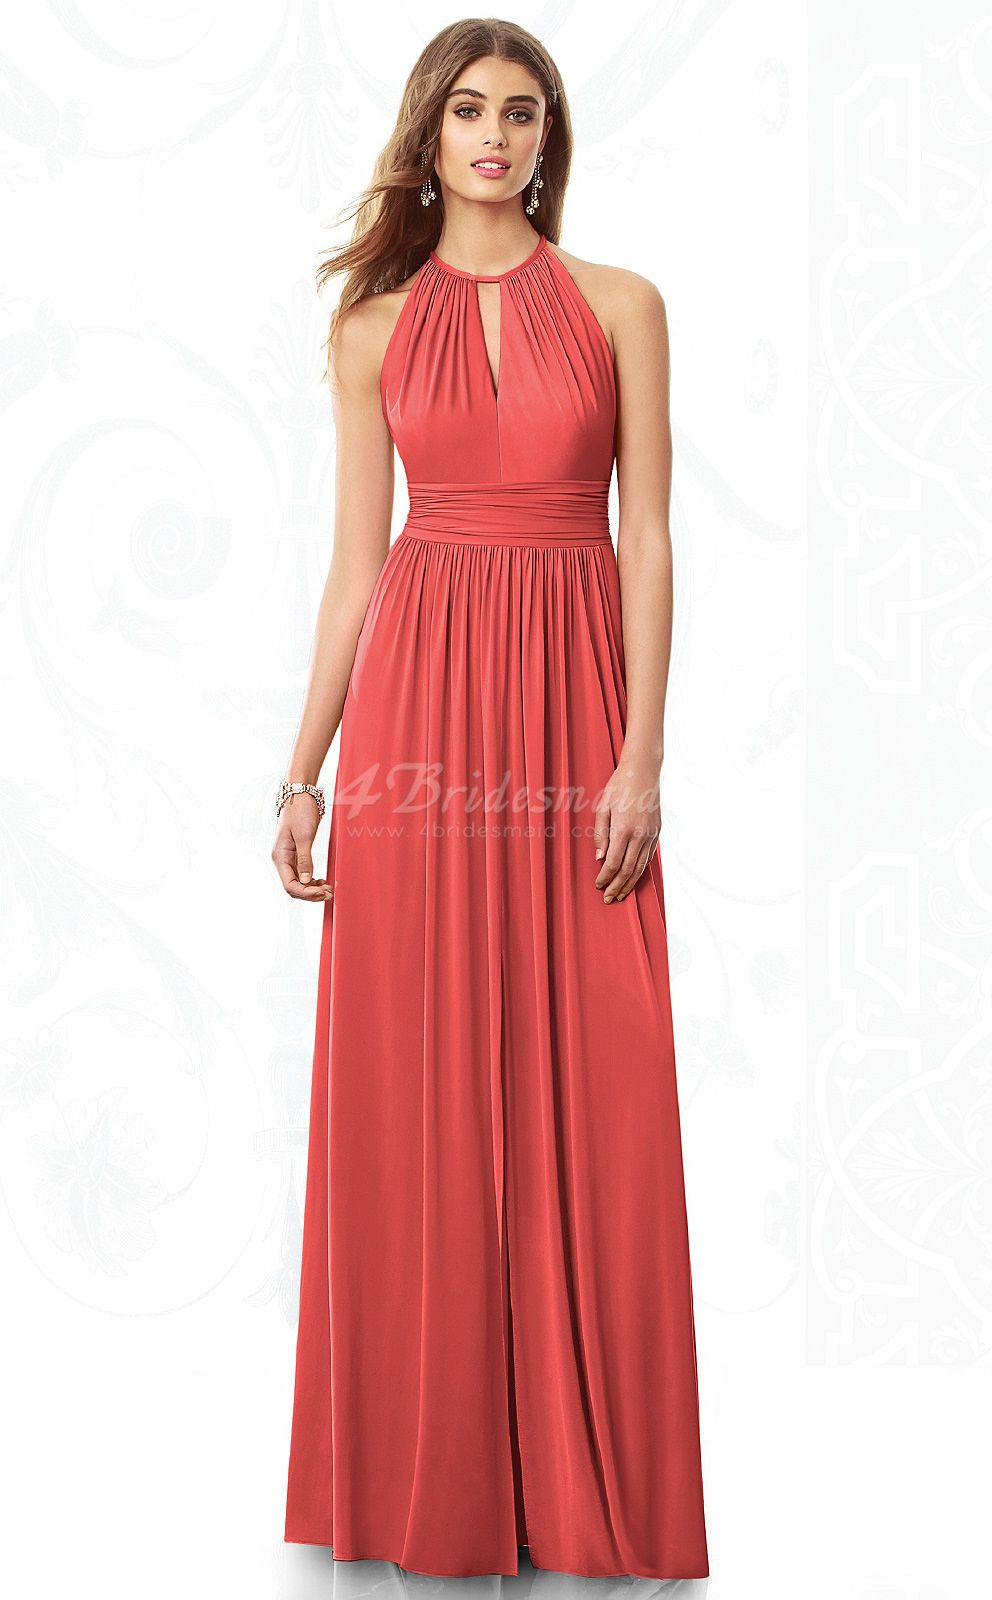 Bridesmaid dress except in sage watermelon chiffon a line halter bridesmaid dress except in sage watermelon chiffon a line halter floor length bridesmaid ombrellifo Image collections